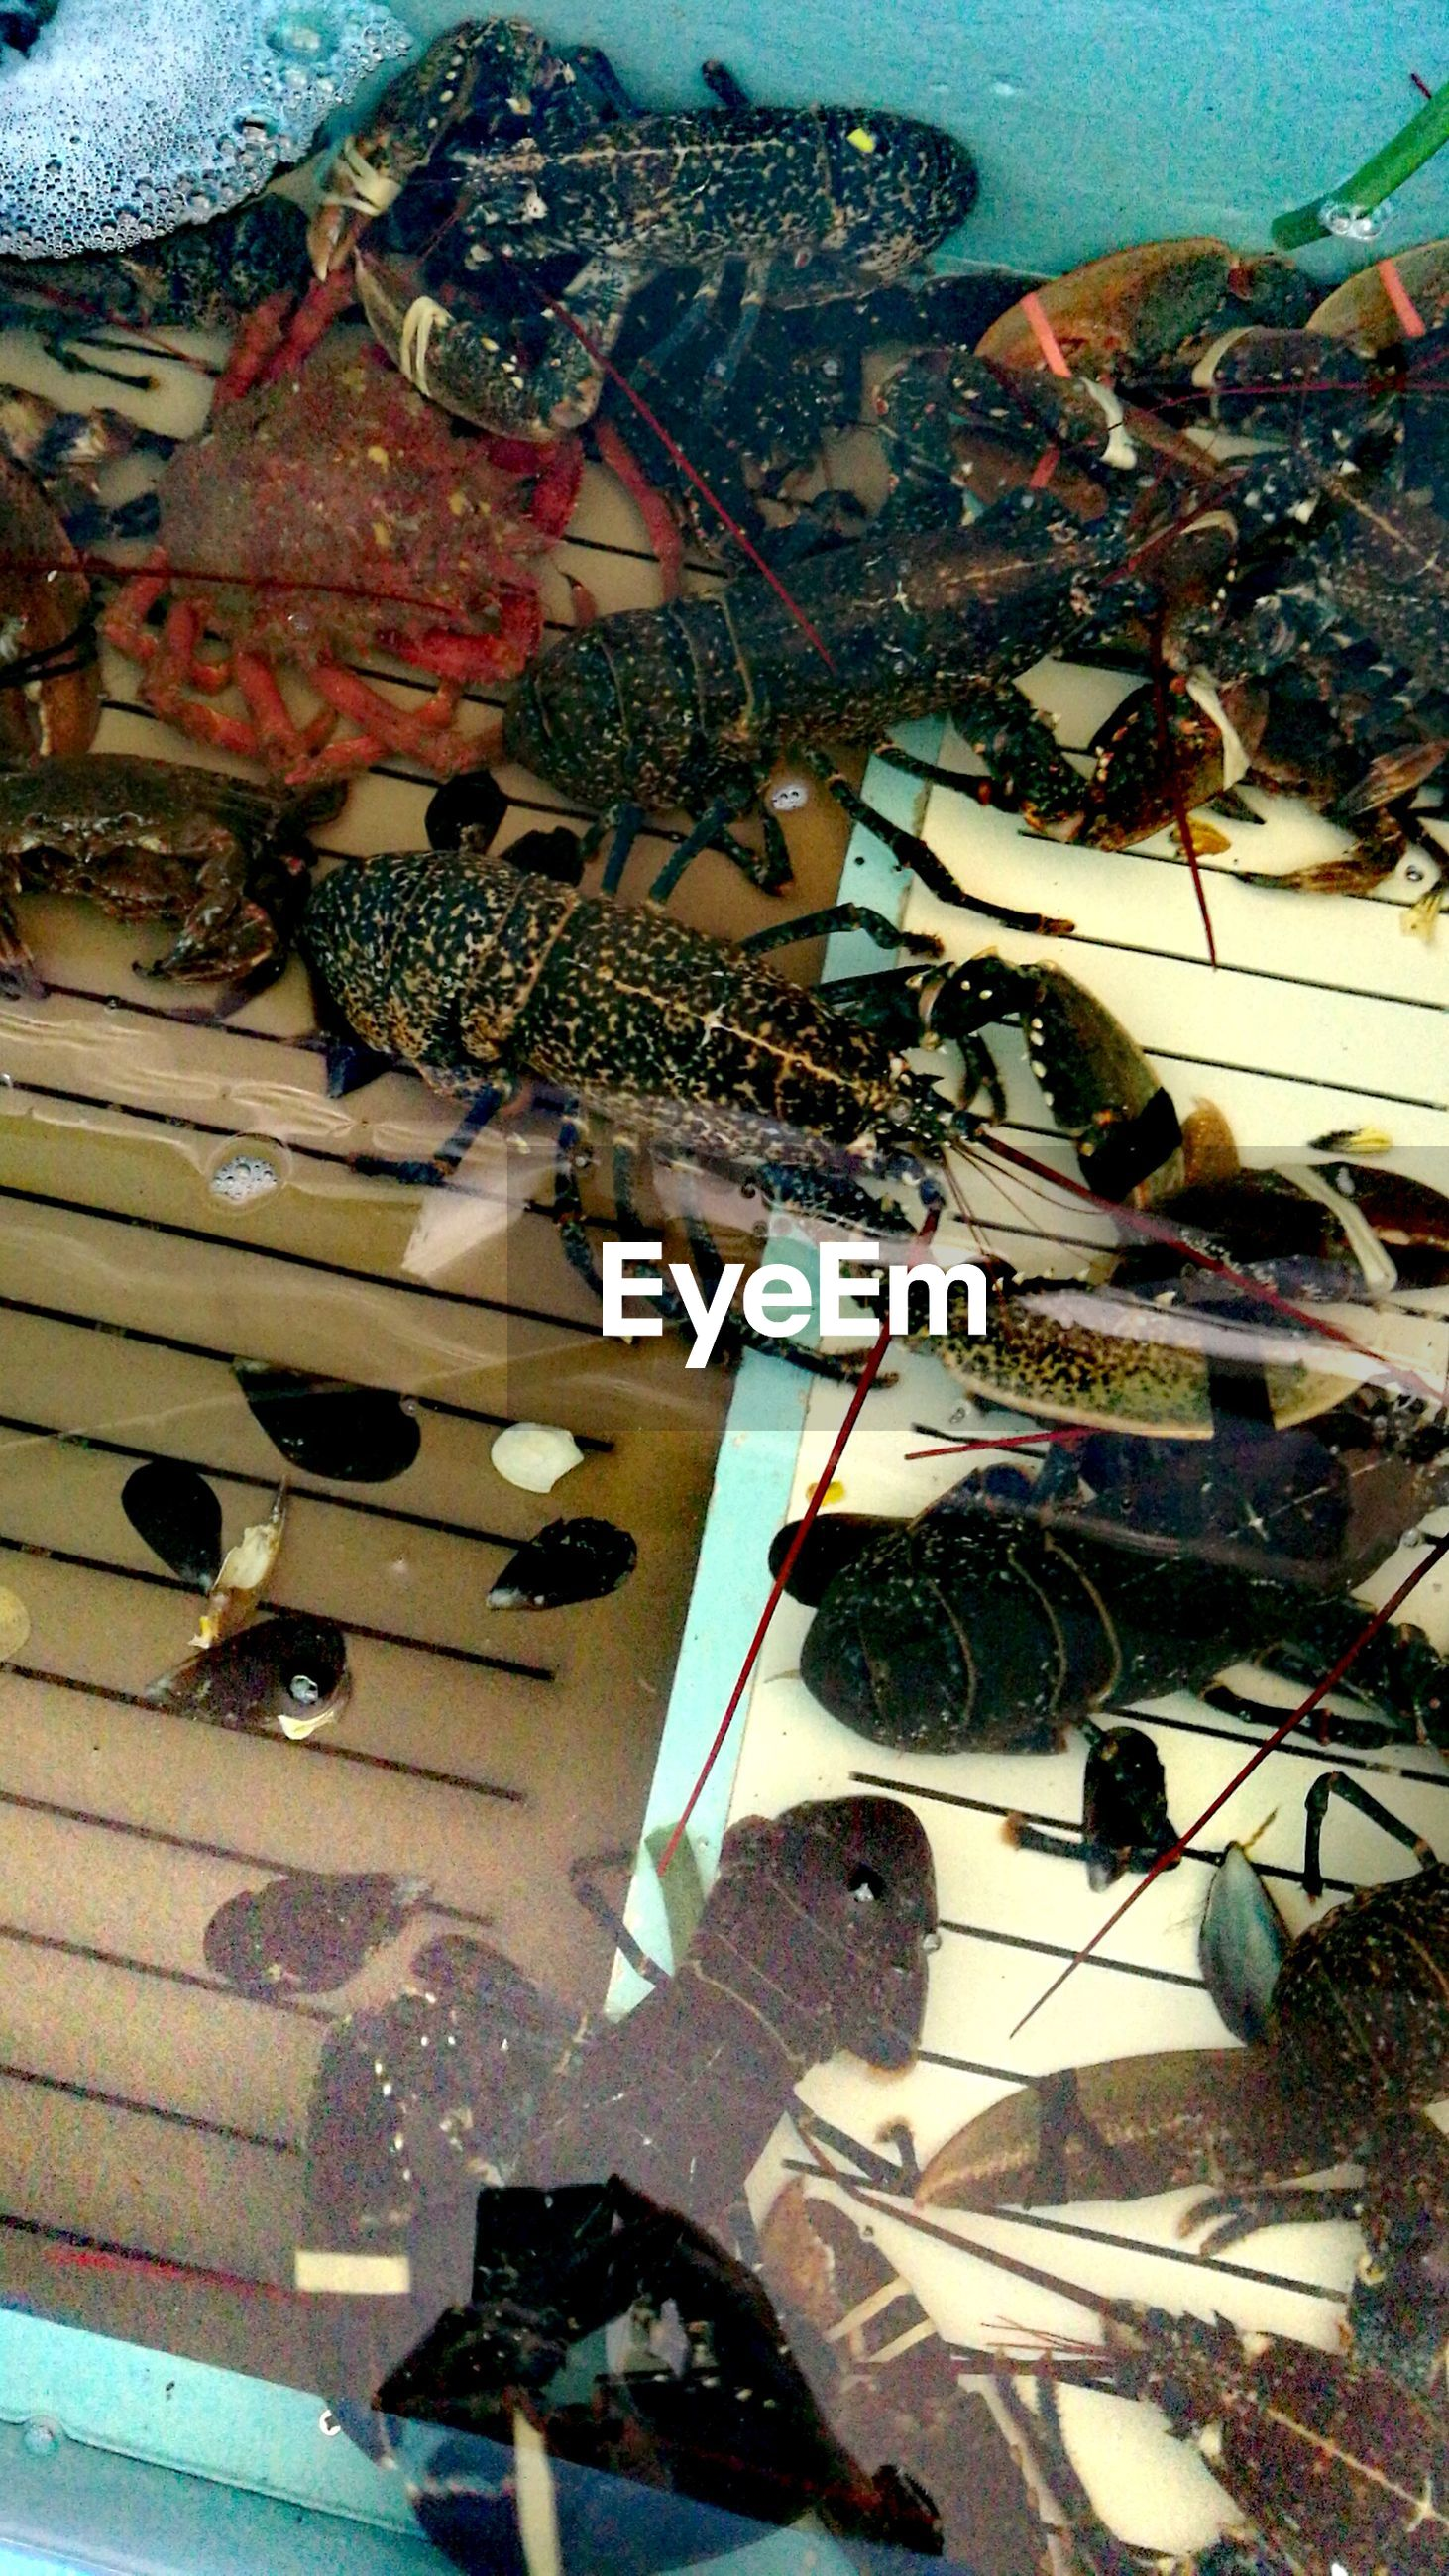 High angle view of crabs and lobsters in water